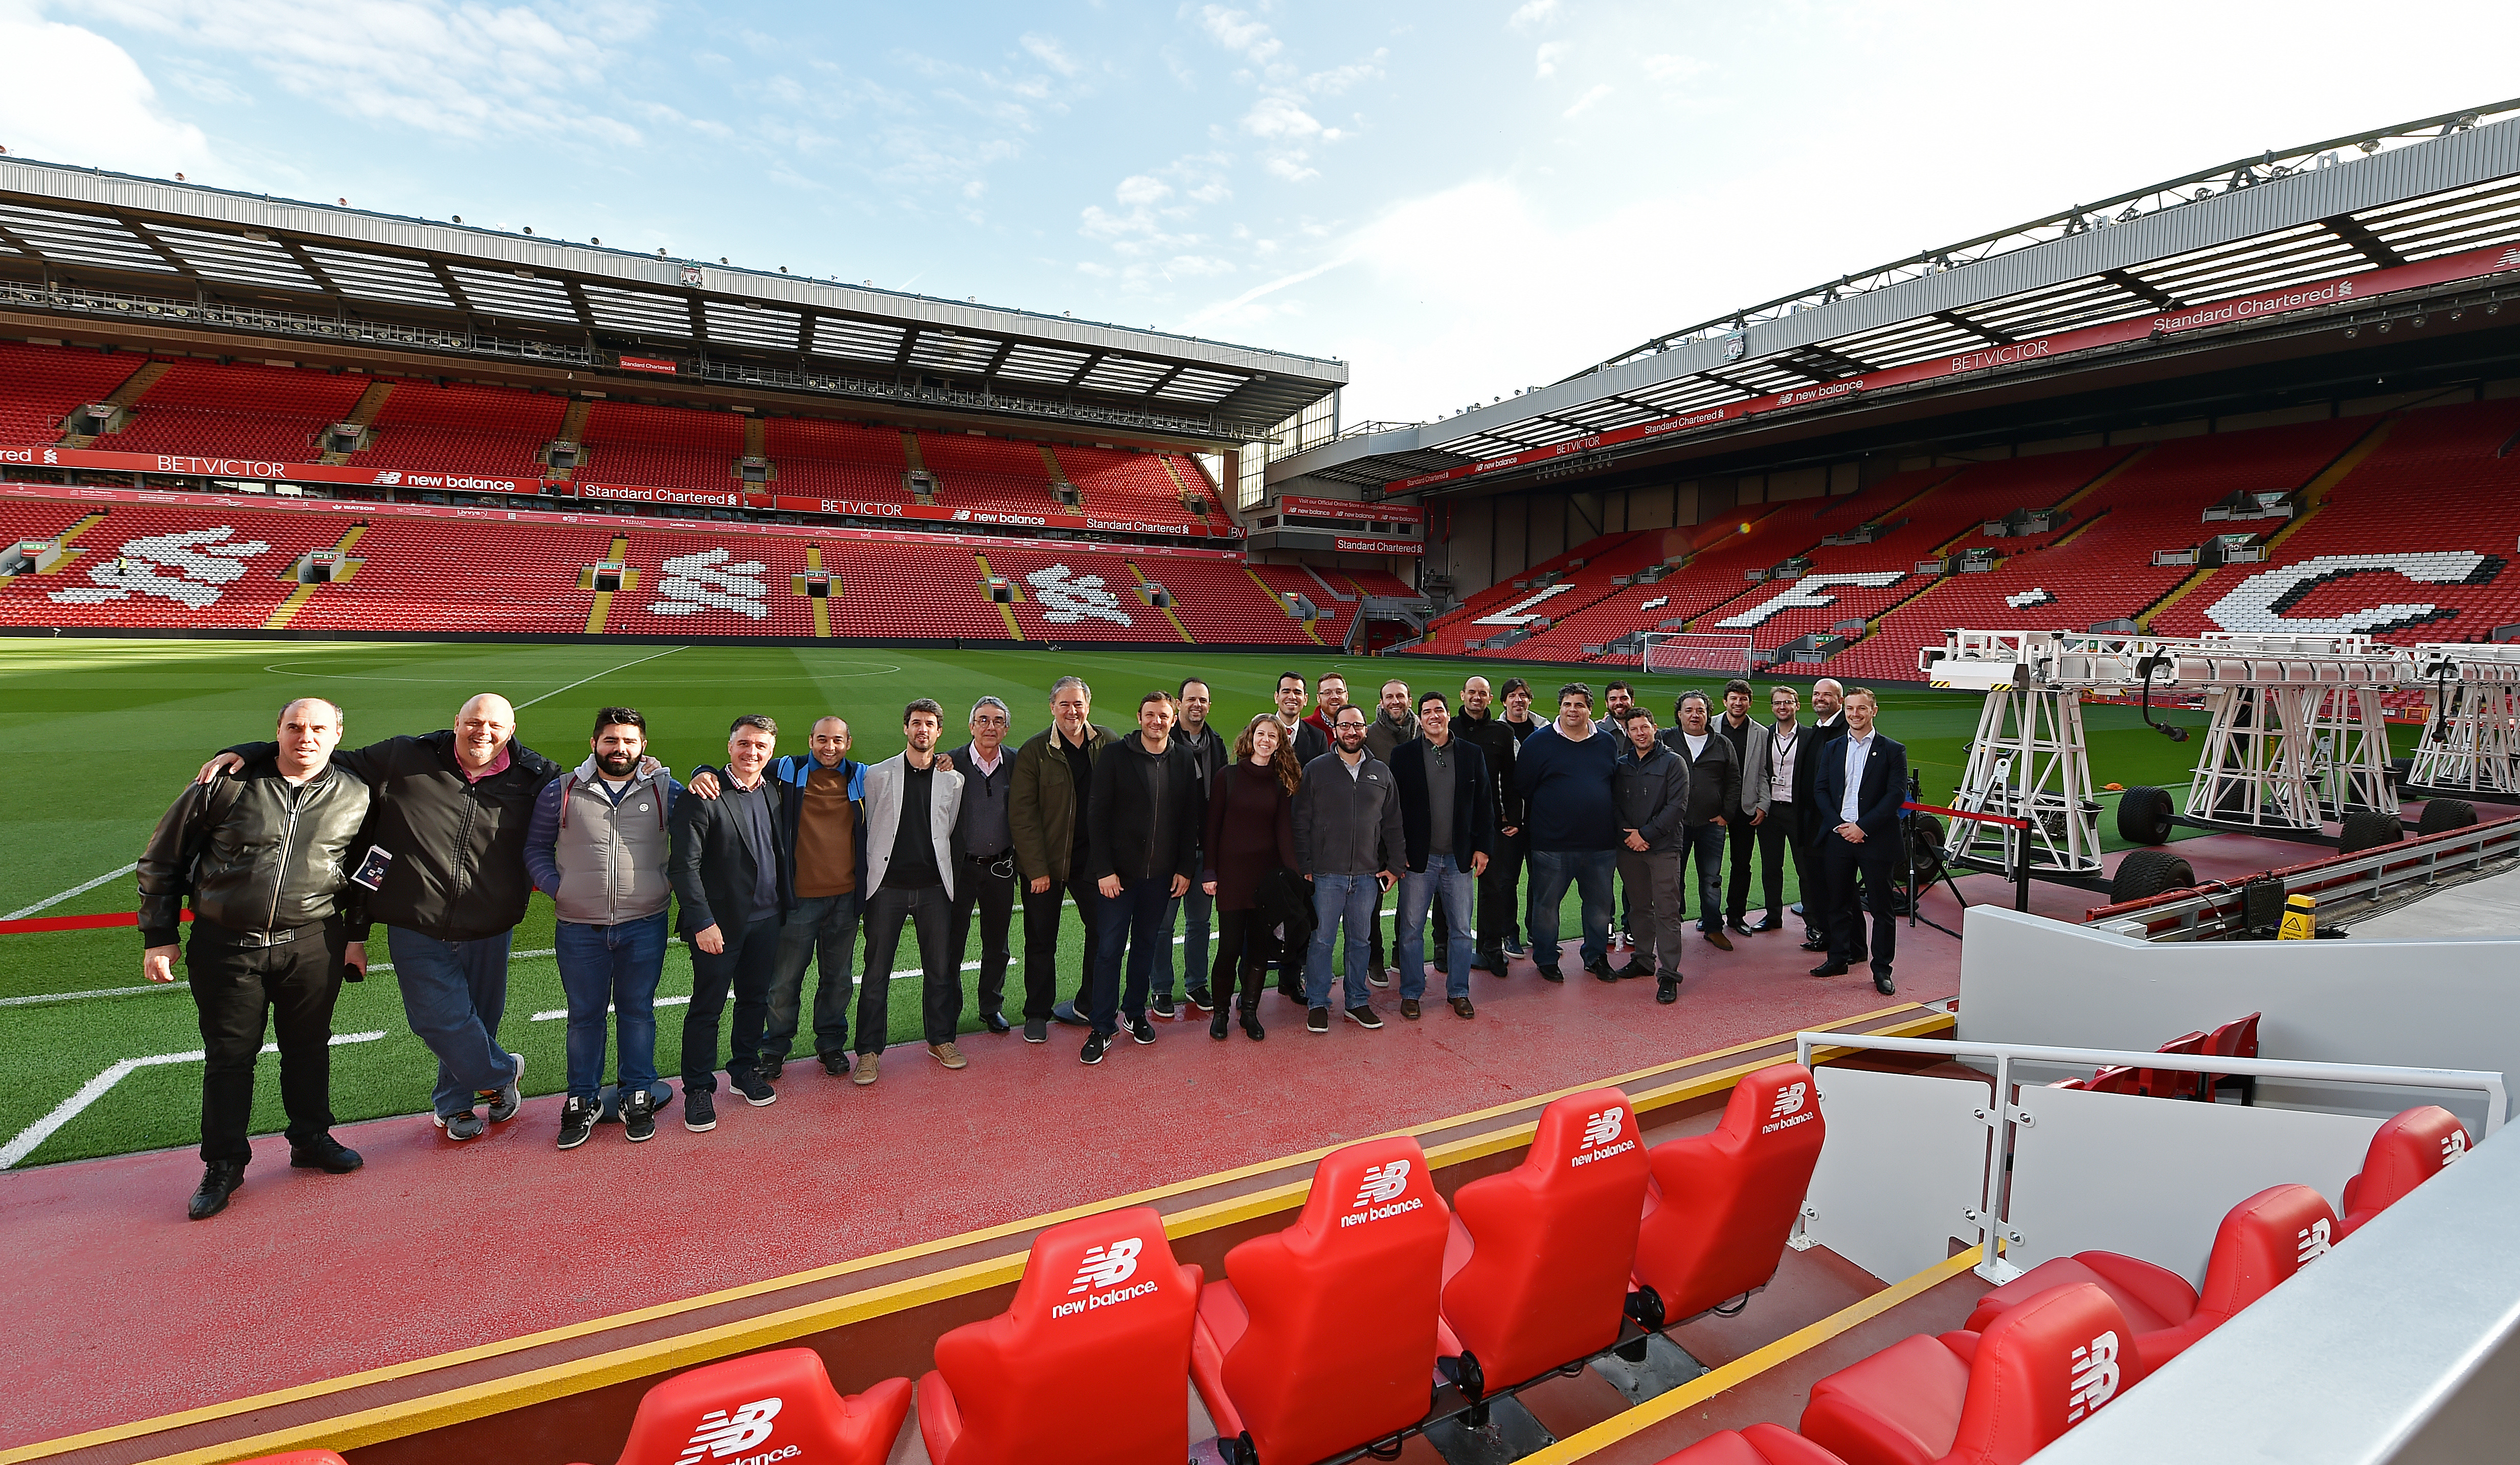 22.10.16 Delegate Anfield Tour 07